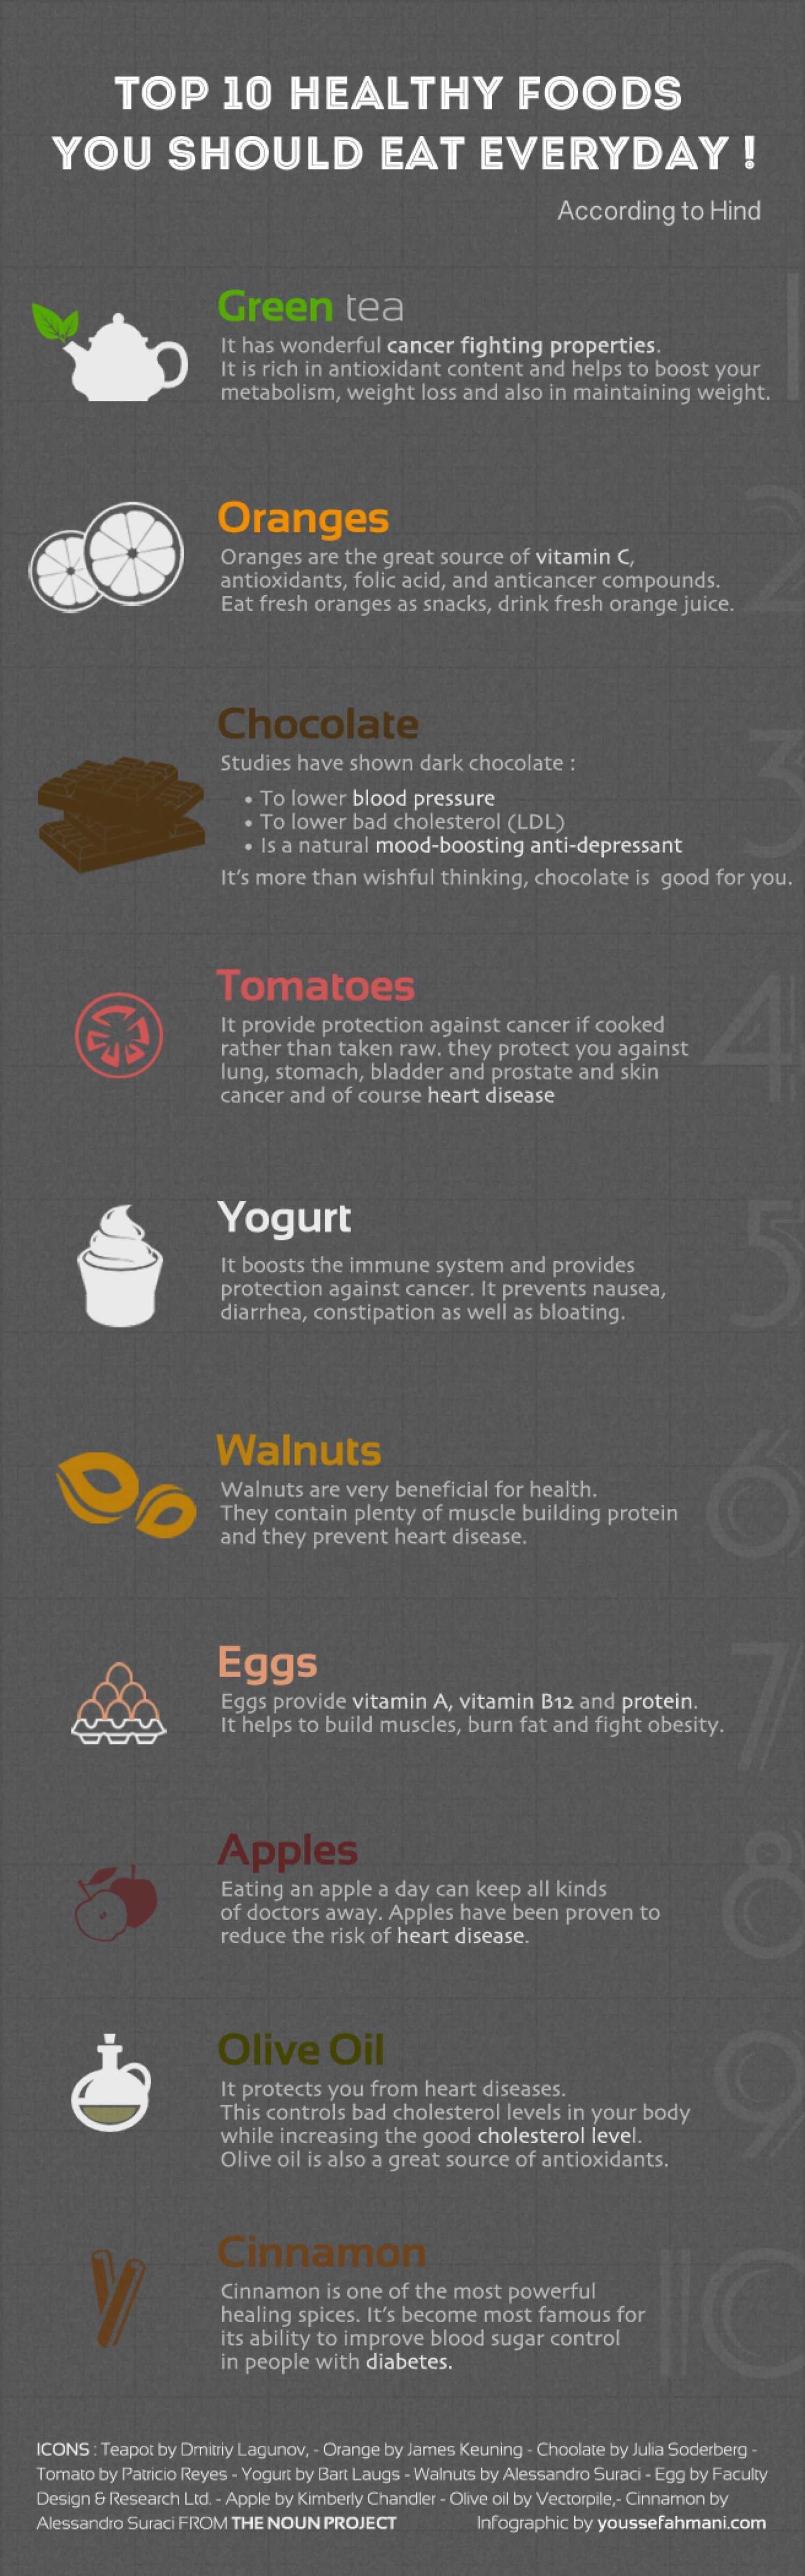 Fabulous Foods Infographic